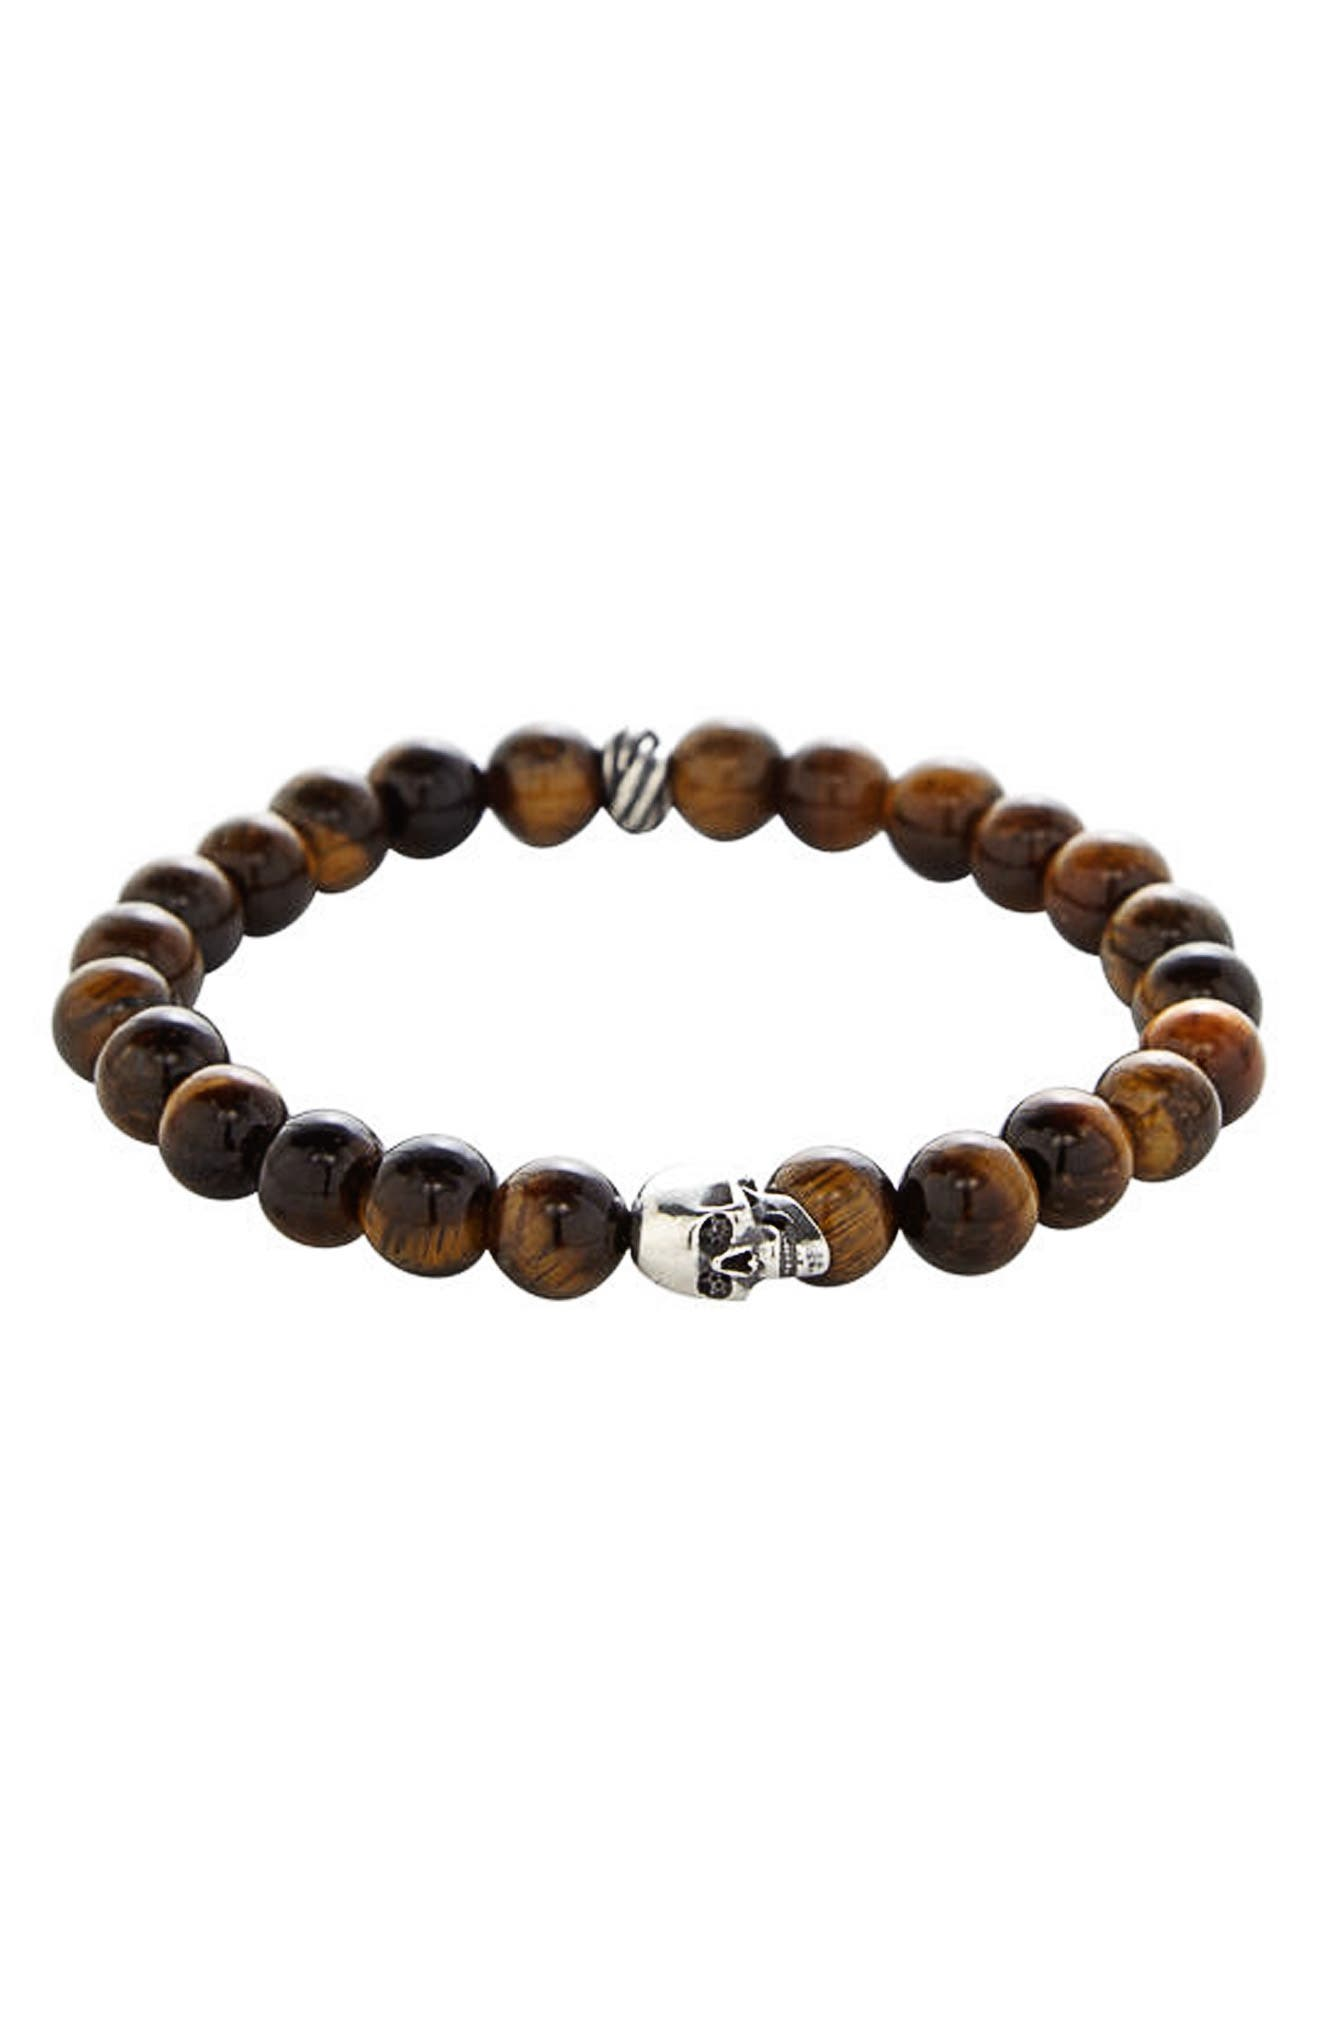 Stone Bead Stretch Bracelet,                         Main,                         color, BROWN